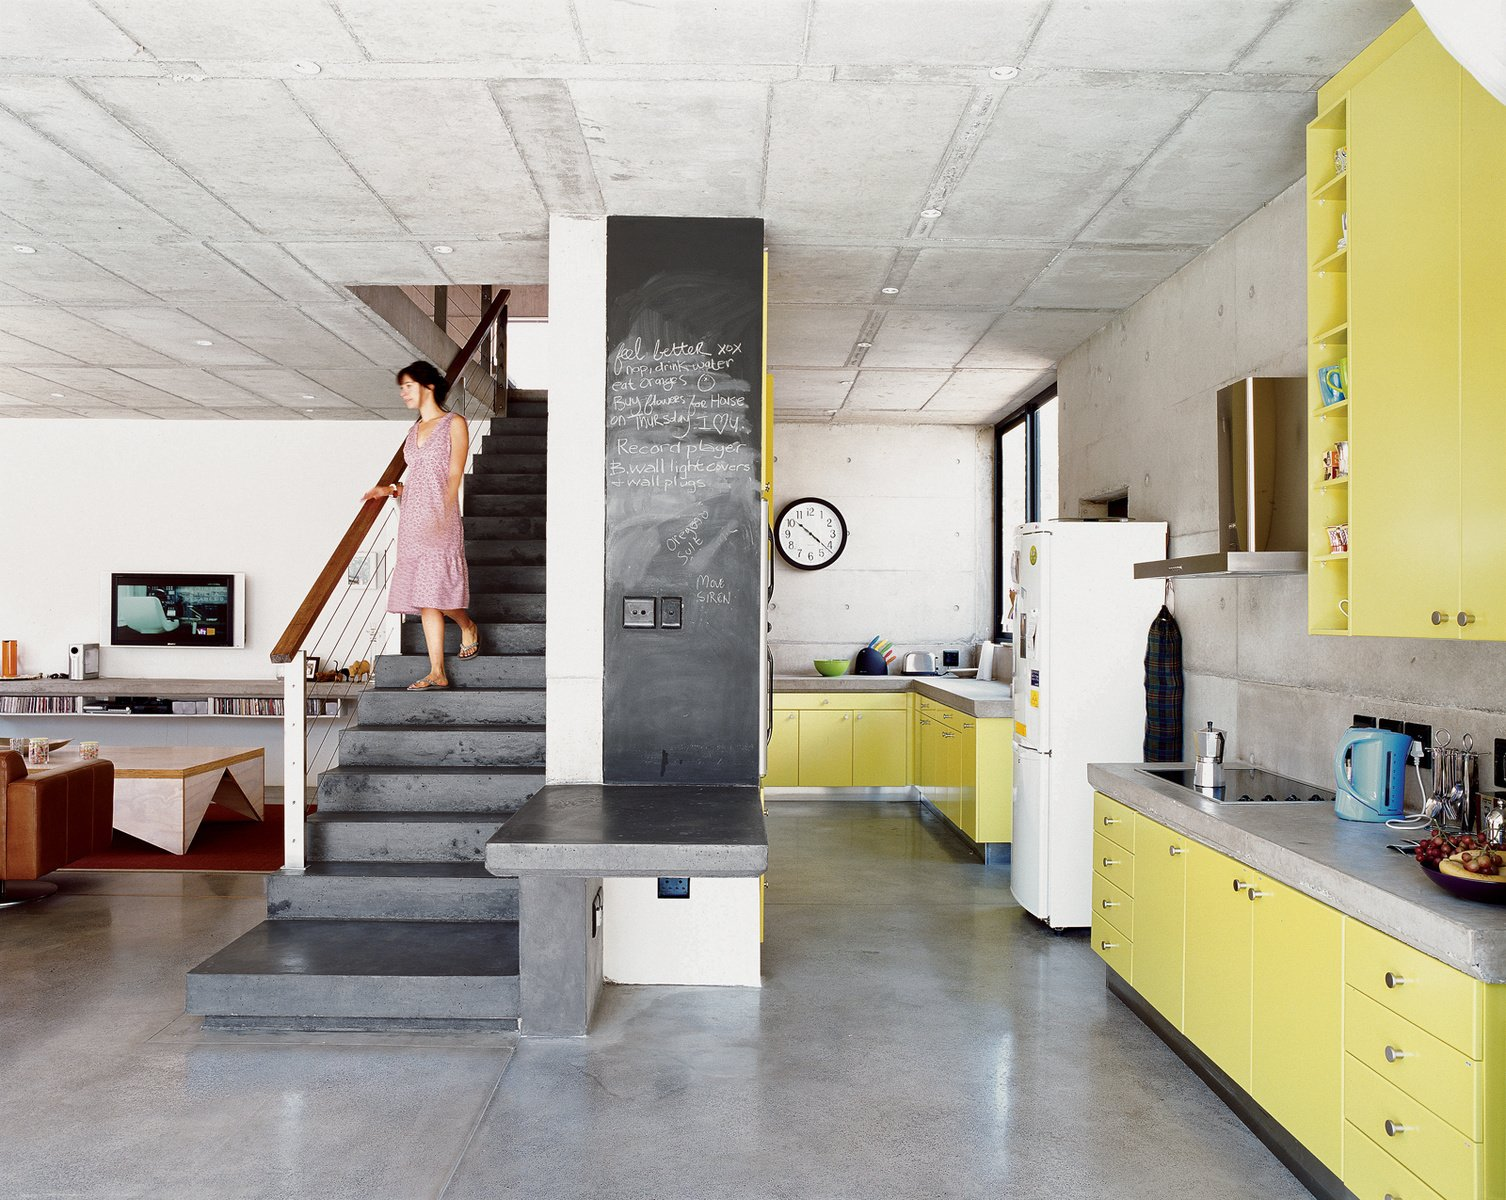 Gregory Katz proves that three times is a charm with his trio of concrete homes, which challenge the status quo in this quiet Johannesburg suburb. The kitchen shines in a bright yellow. Photo by: Elsa Young  Your Rooms We Love: Modern Countertop Inspiration by Kelsey Keith from Big Moves for Small Spaces